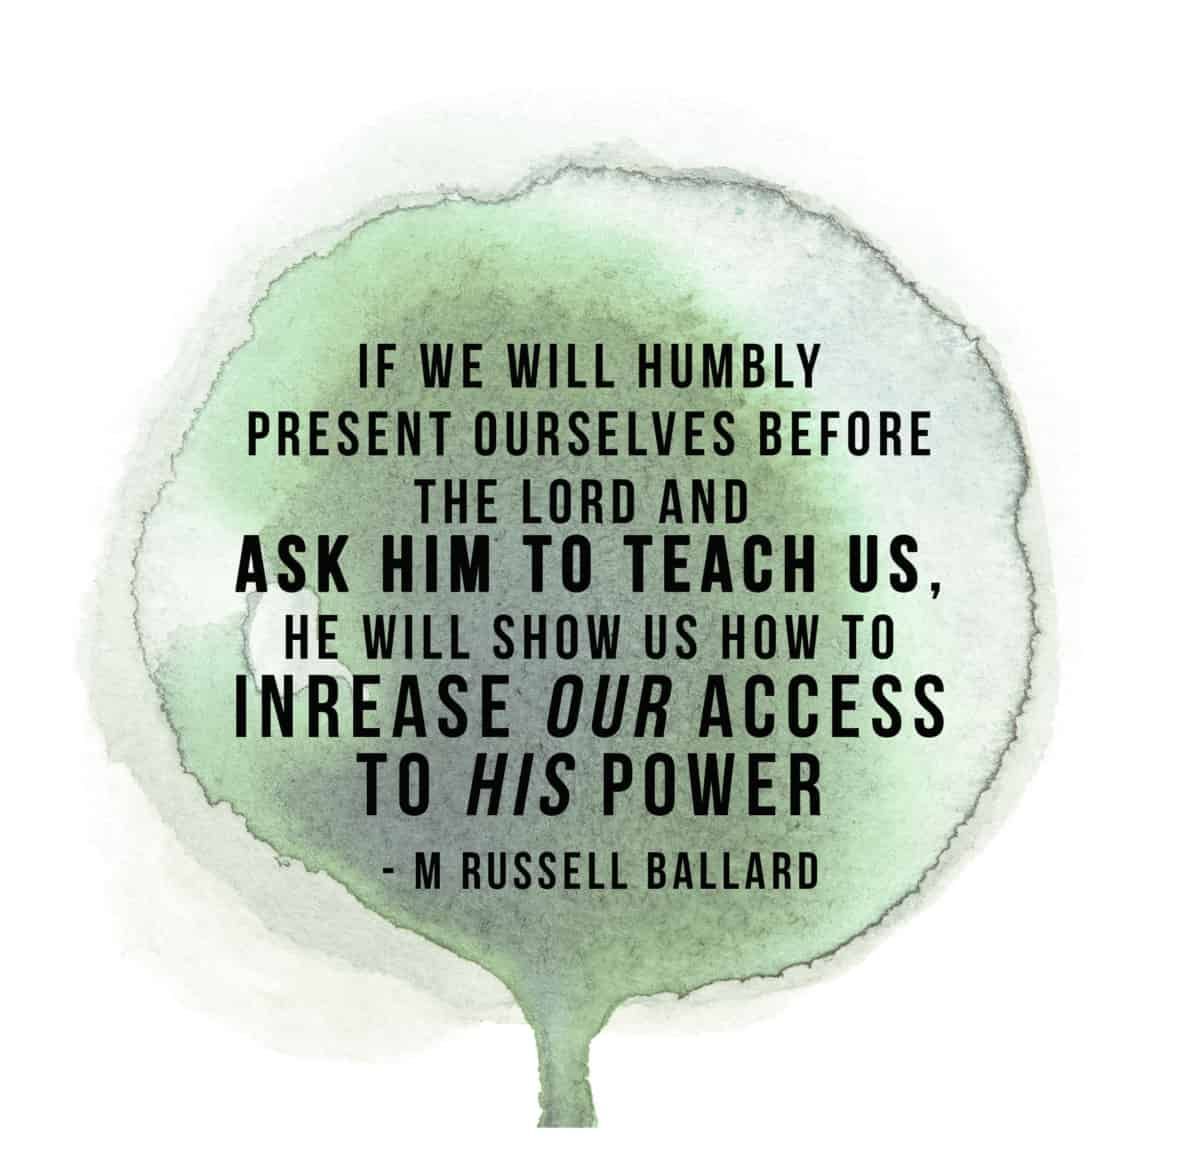 """""""If we will humbly resent ourselves before the lord and ask him to teach us, he will show us how to increase our access to his power"""" - M Russell Ballard"""